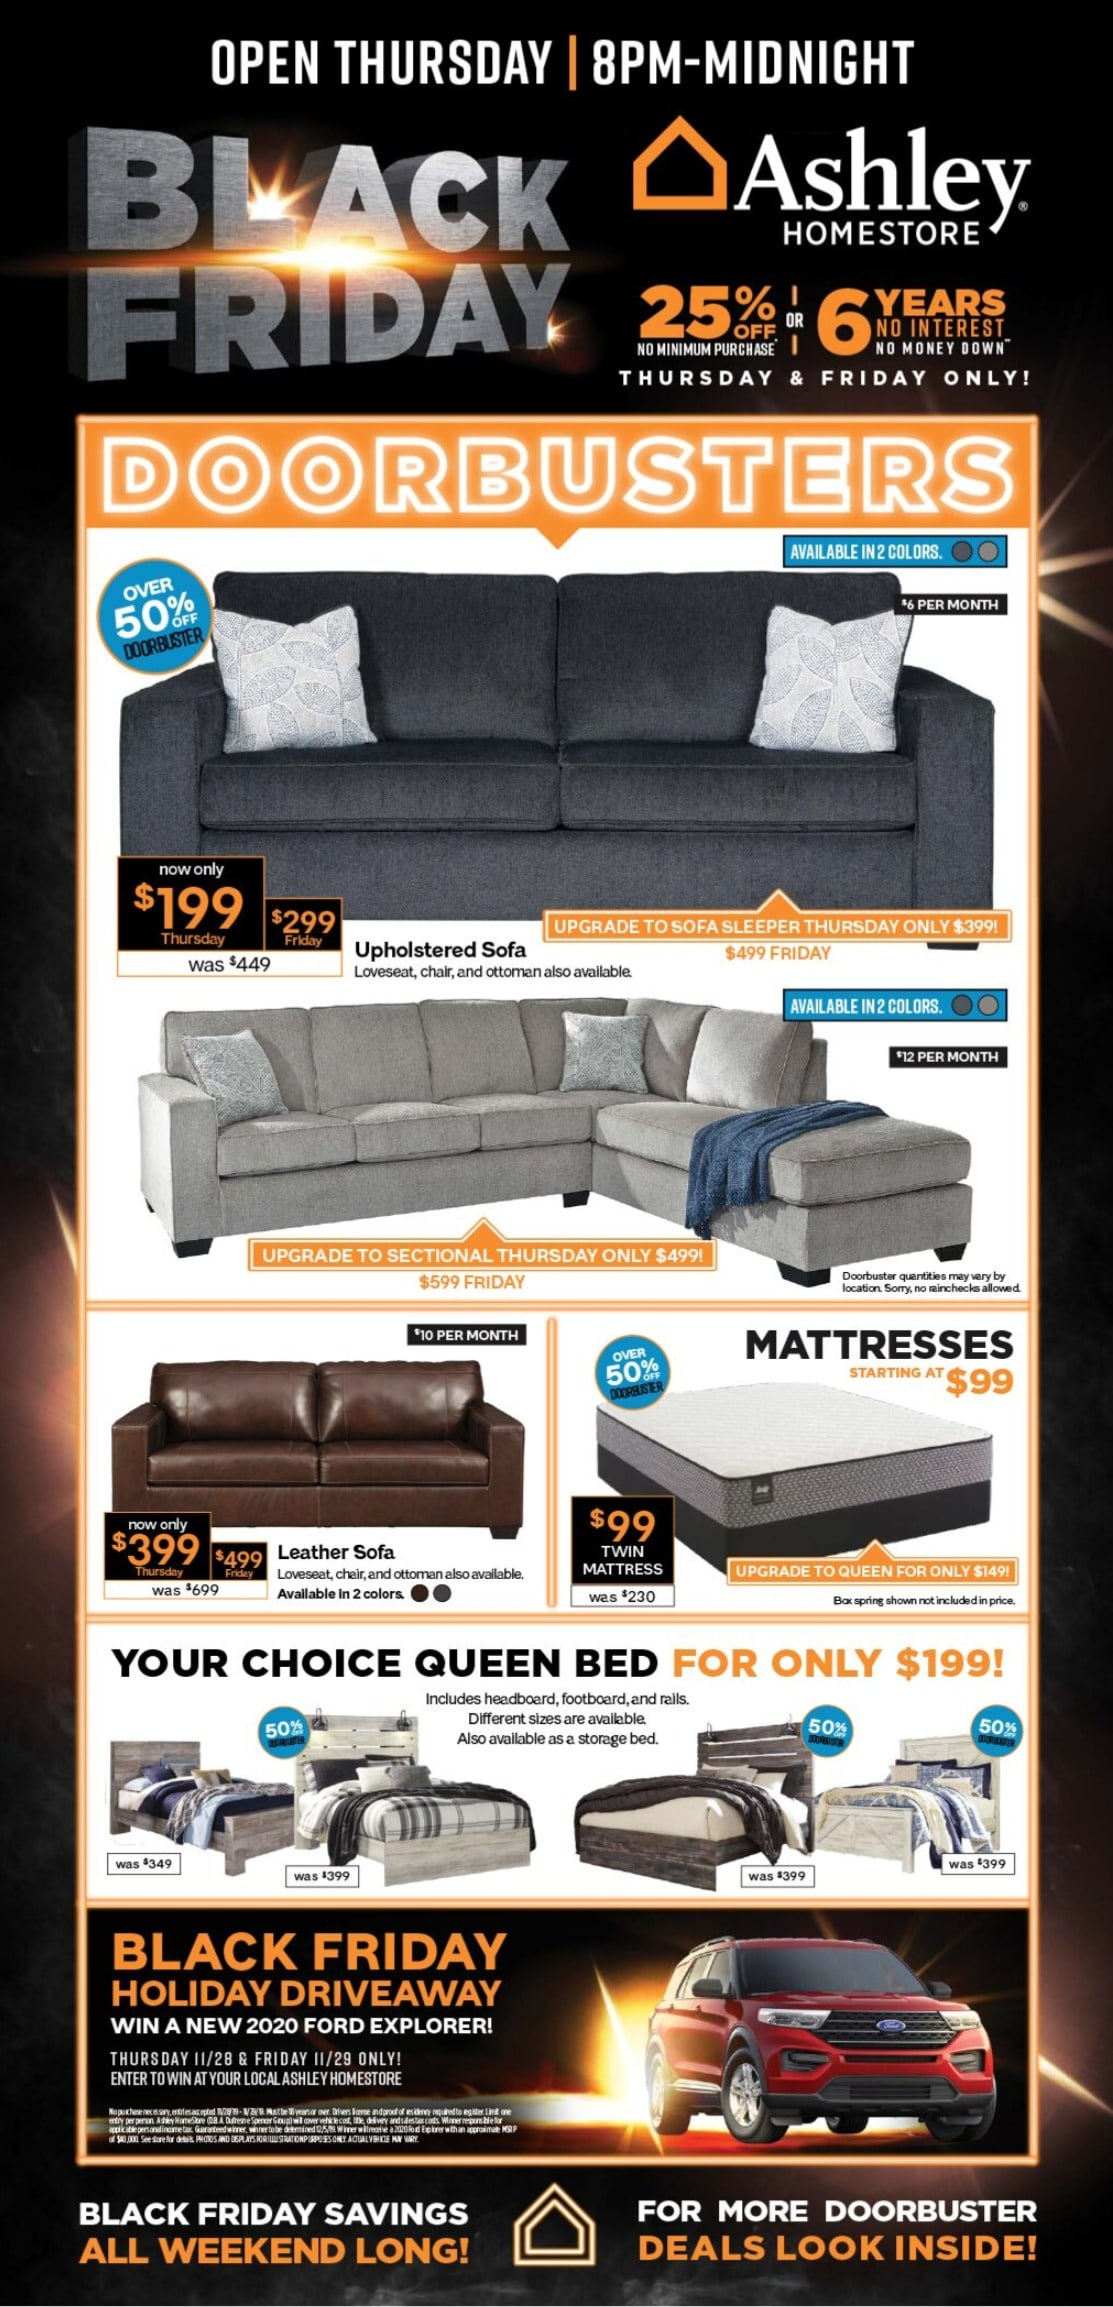 ashley furniture black friday 2019 mattress